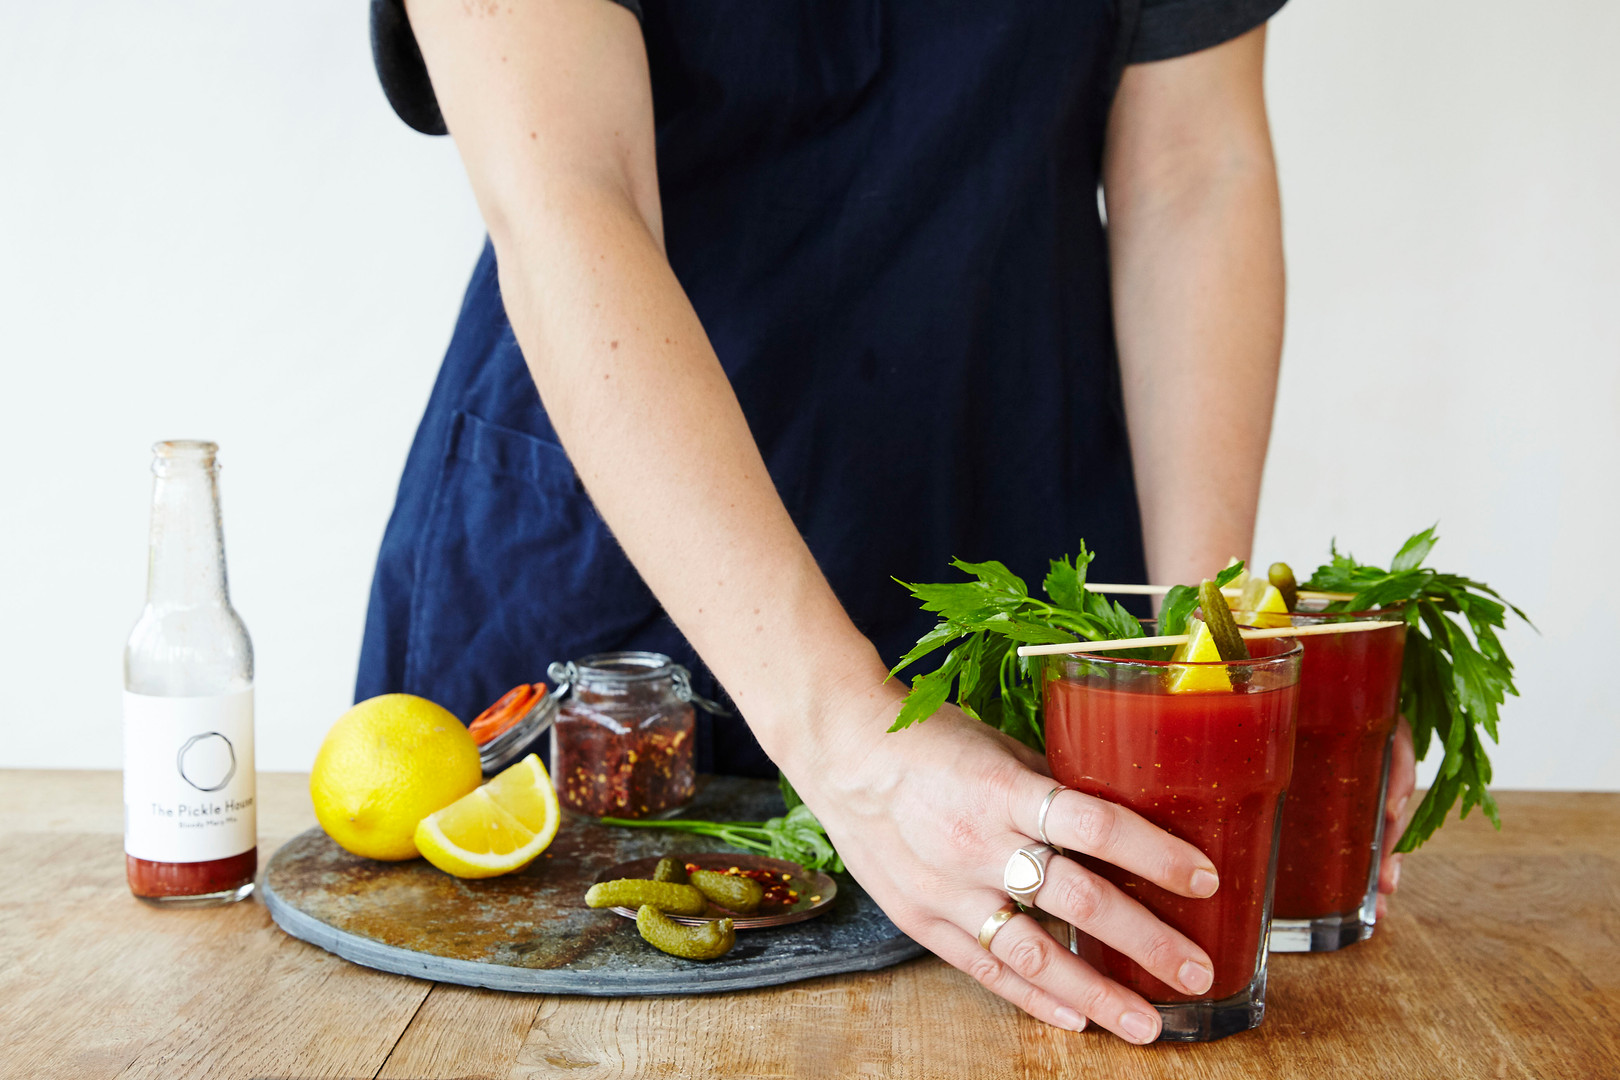 ThePickleHouse_BloodyMary0093.jpg